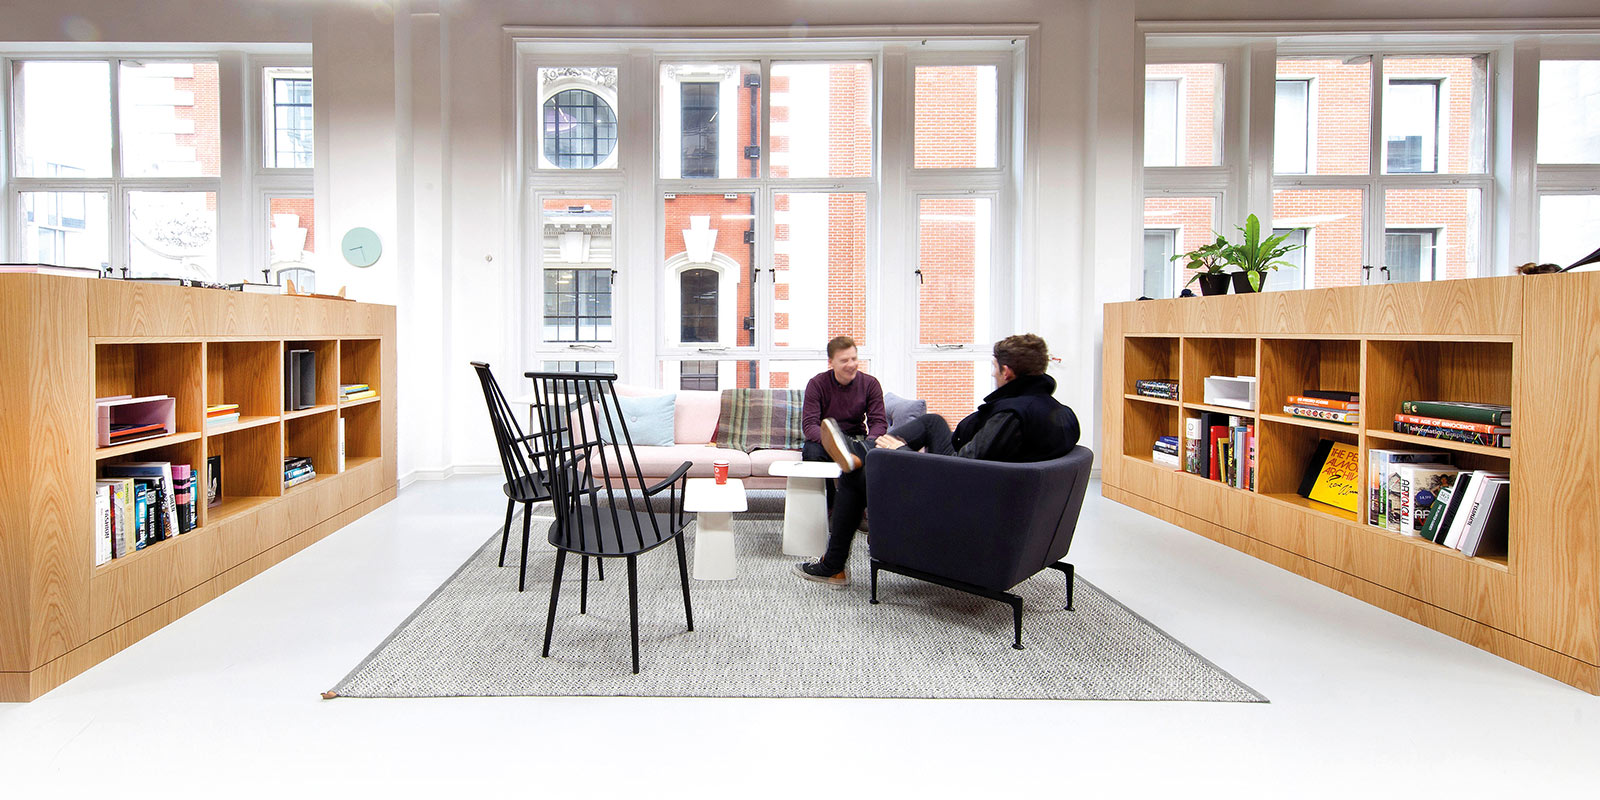 oxford-street-2-business-club-spaces-coworking